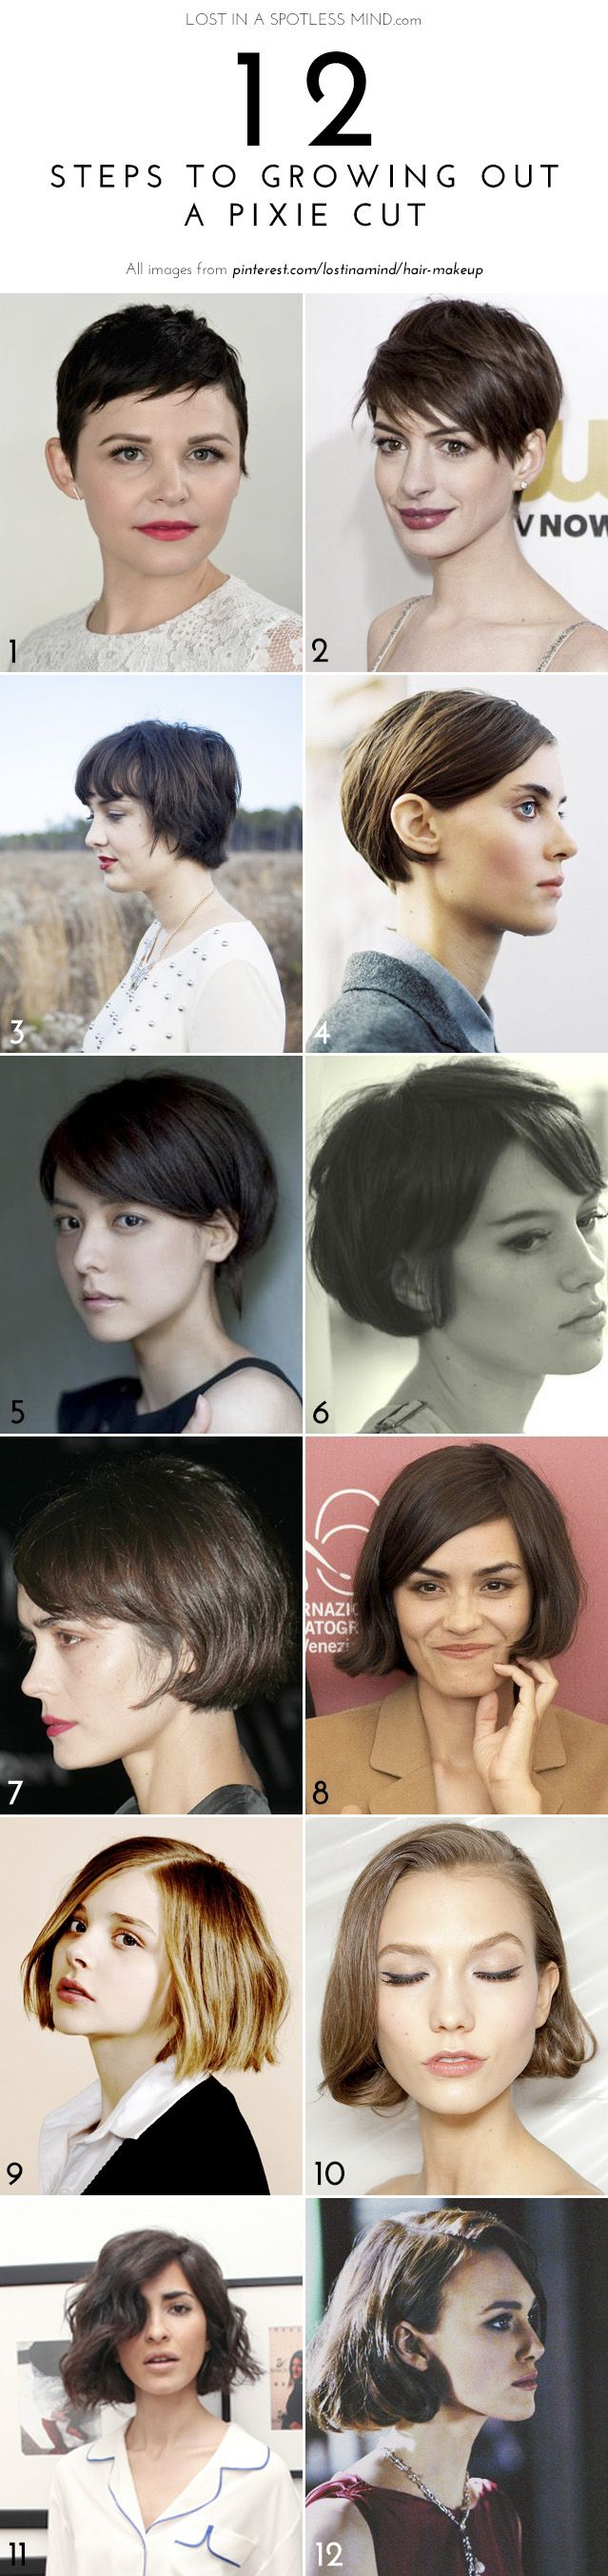 The Growing Out A Pixie Plan My Goal Is 4 But Then She Has One